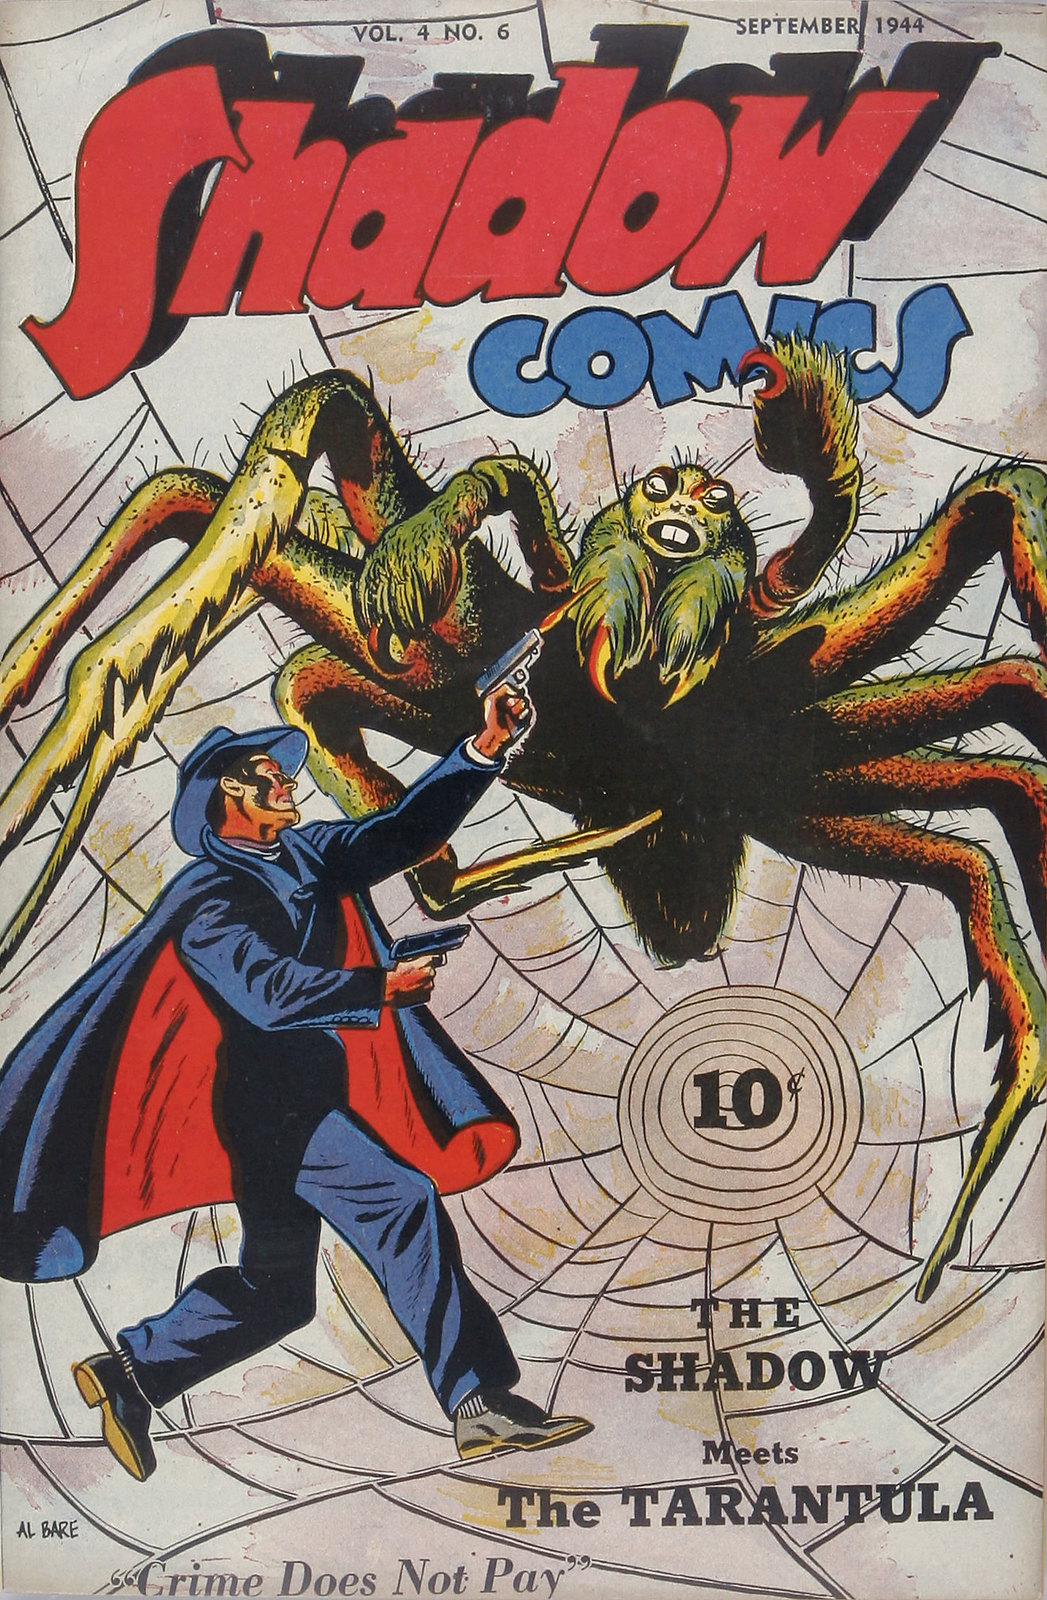 Shadow Comics V4#6 (Street & Smith, 1944) Al Bare Cover